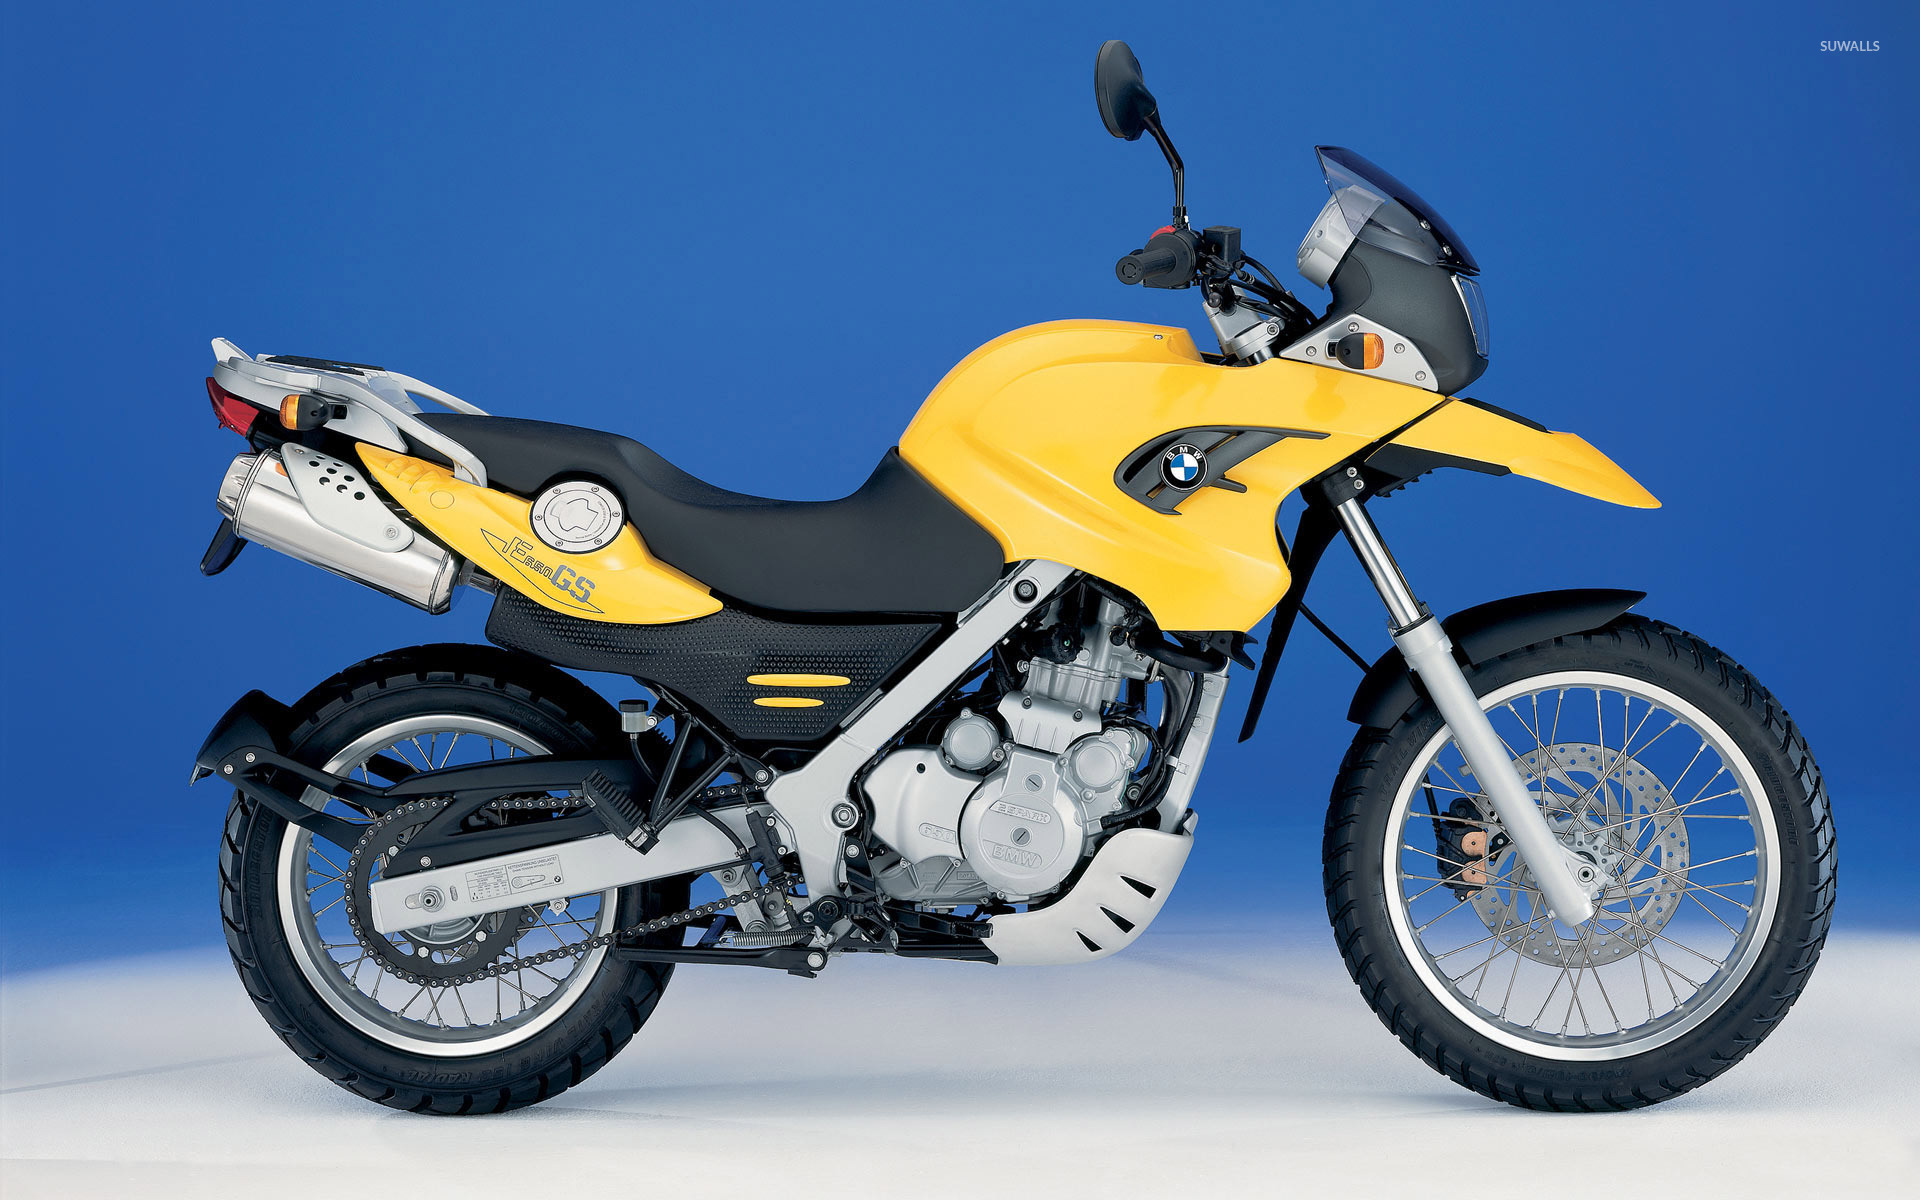 yellow bmw f650gs side view wallpaper motorcycle wallpapers 54273. Black Bedroom Furniture Sets. Home Design Ideas